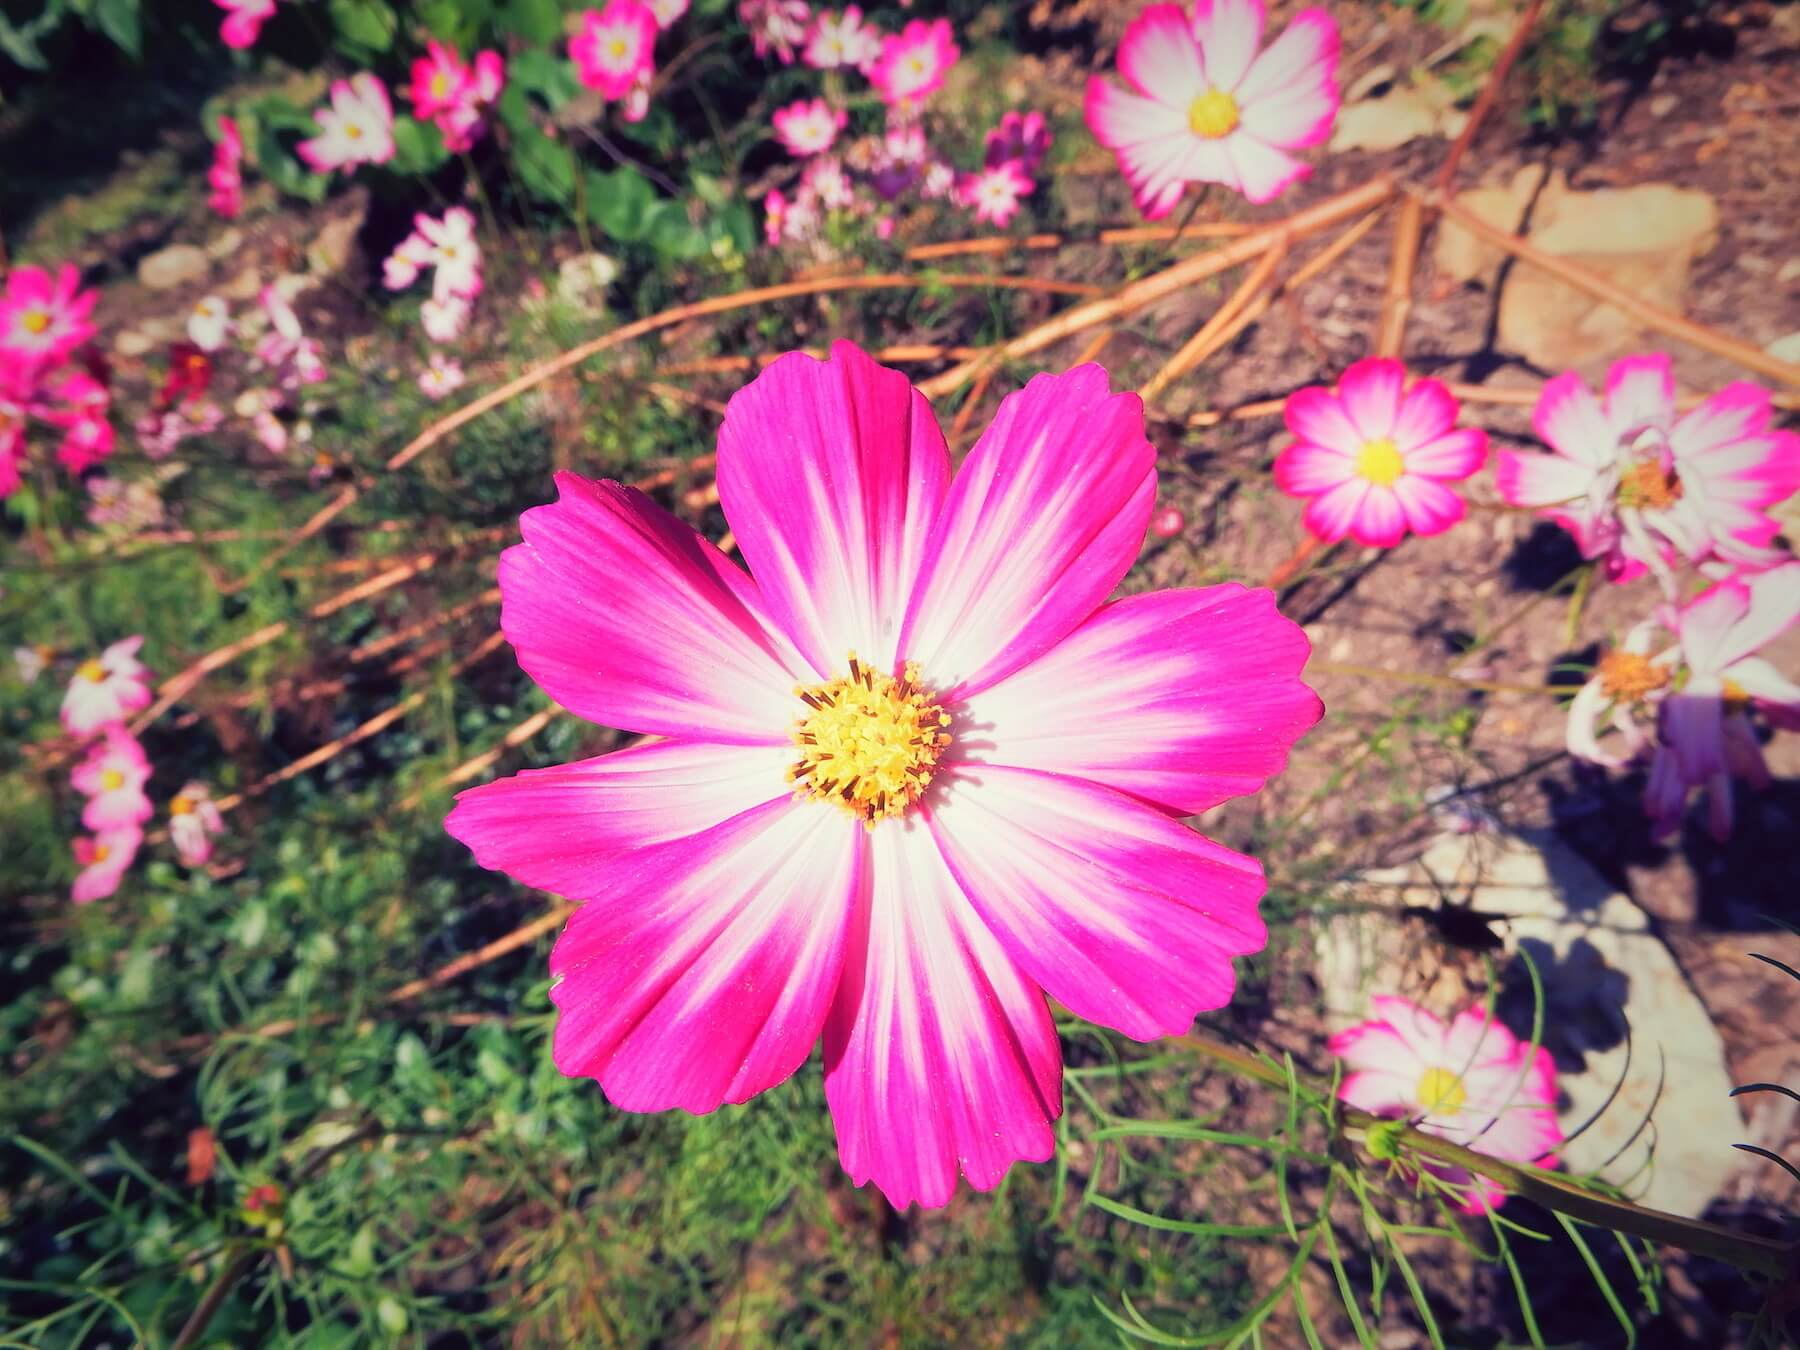 Cosmos in vibrant pink